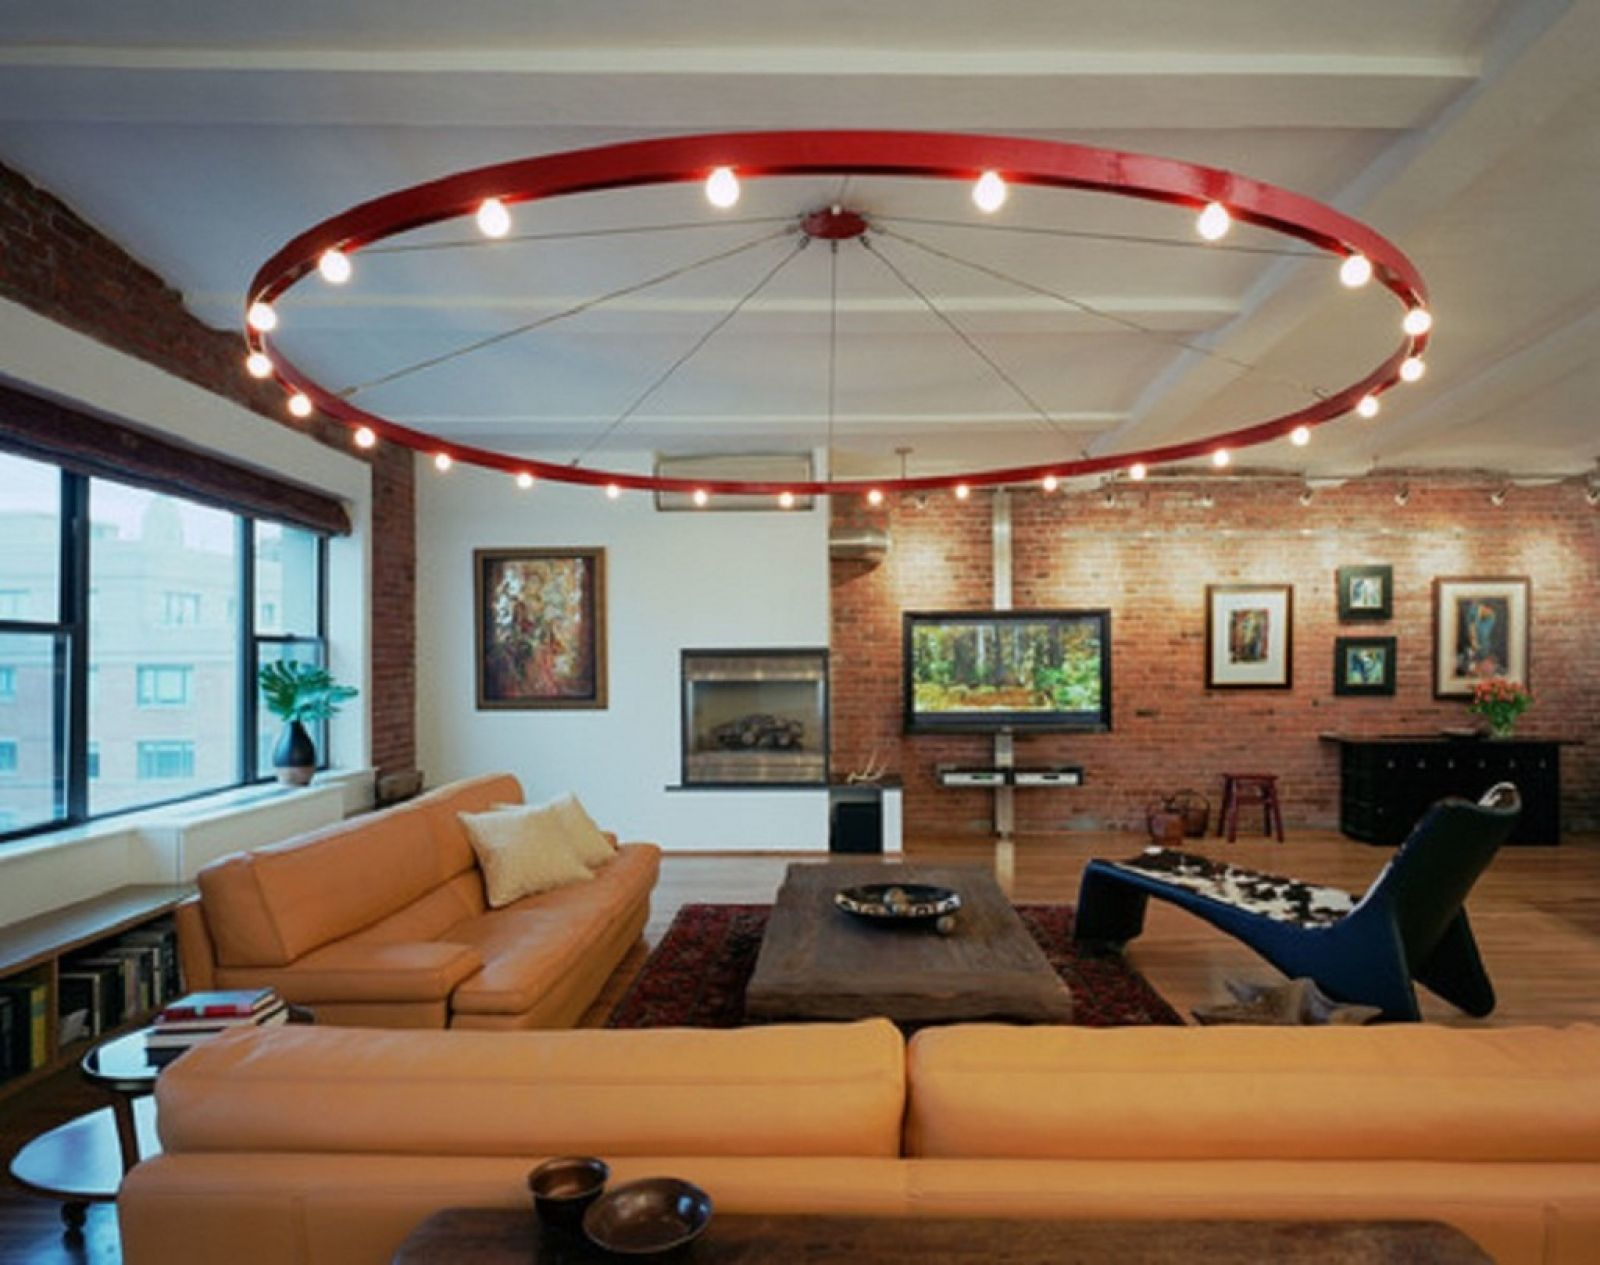 Fixtures for the living room: a large round chandelier with small lamps